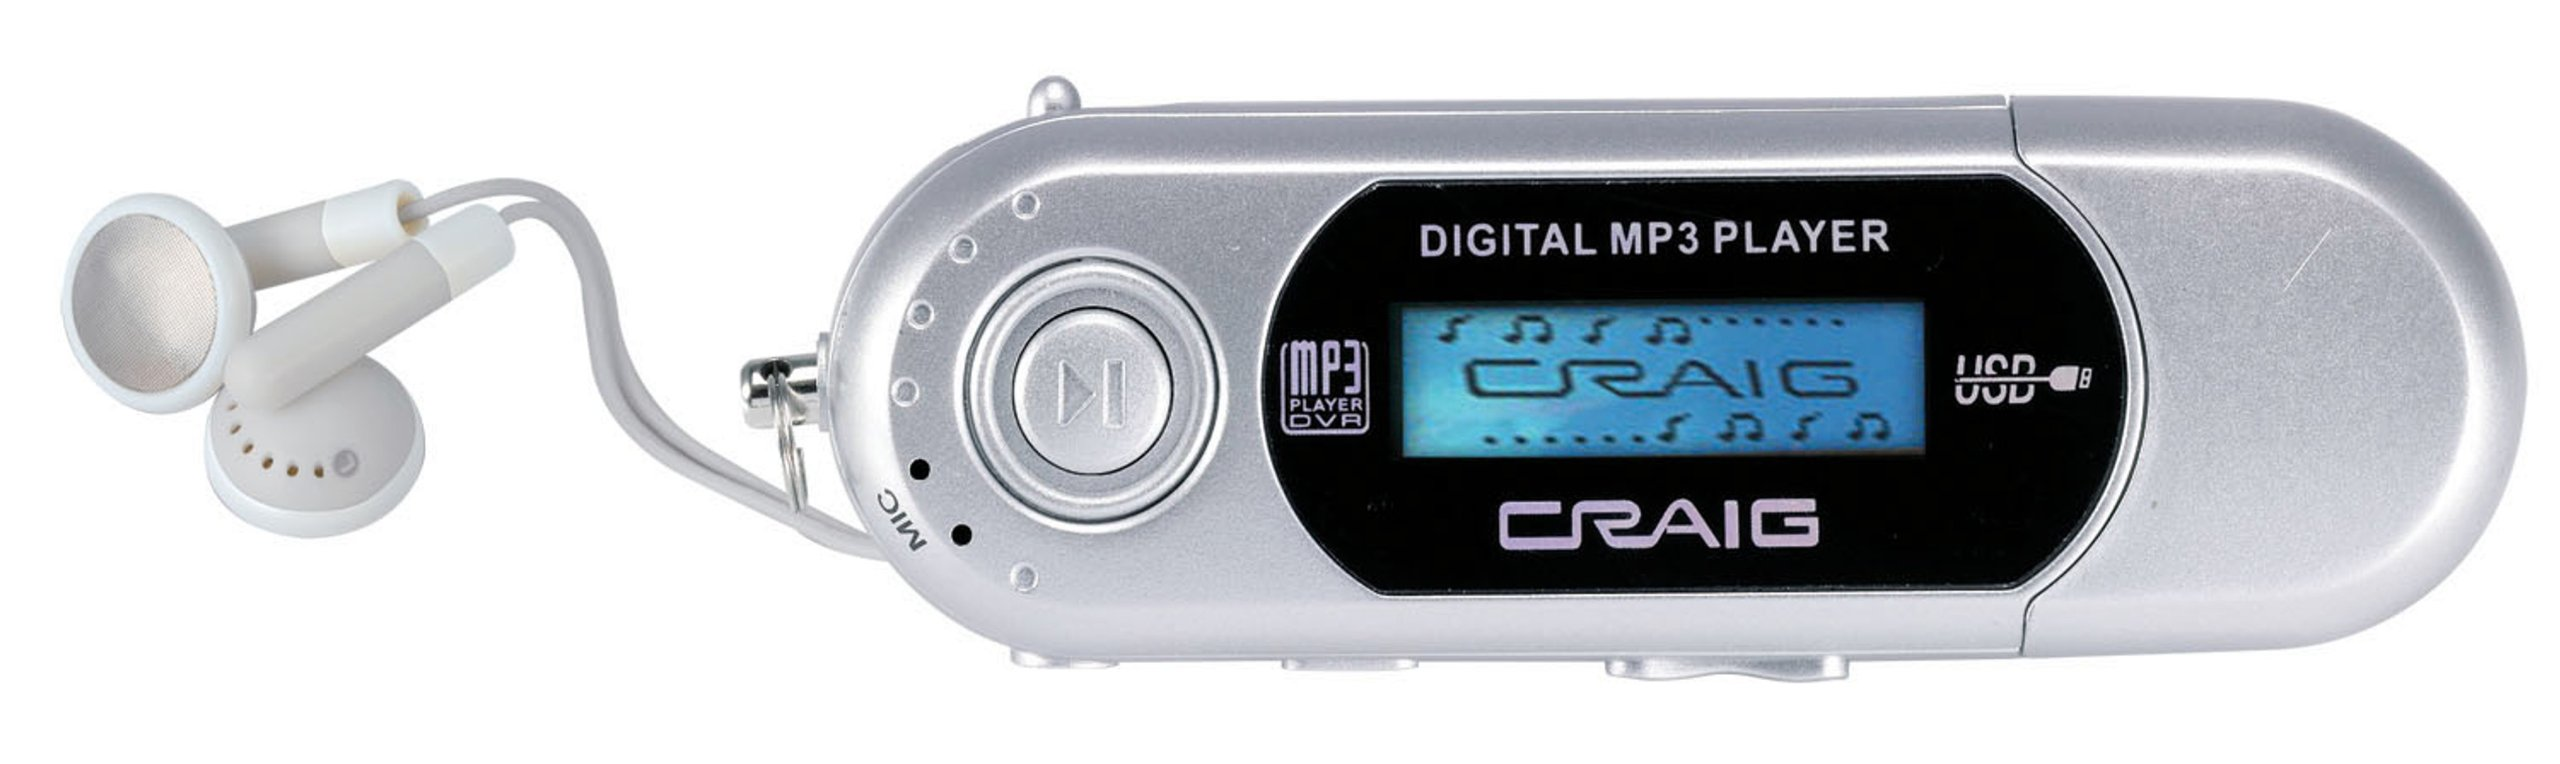 Craig CMP1230F 4 GB MP3 Player with Display